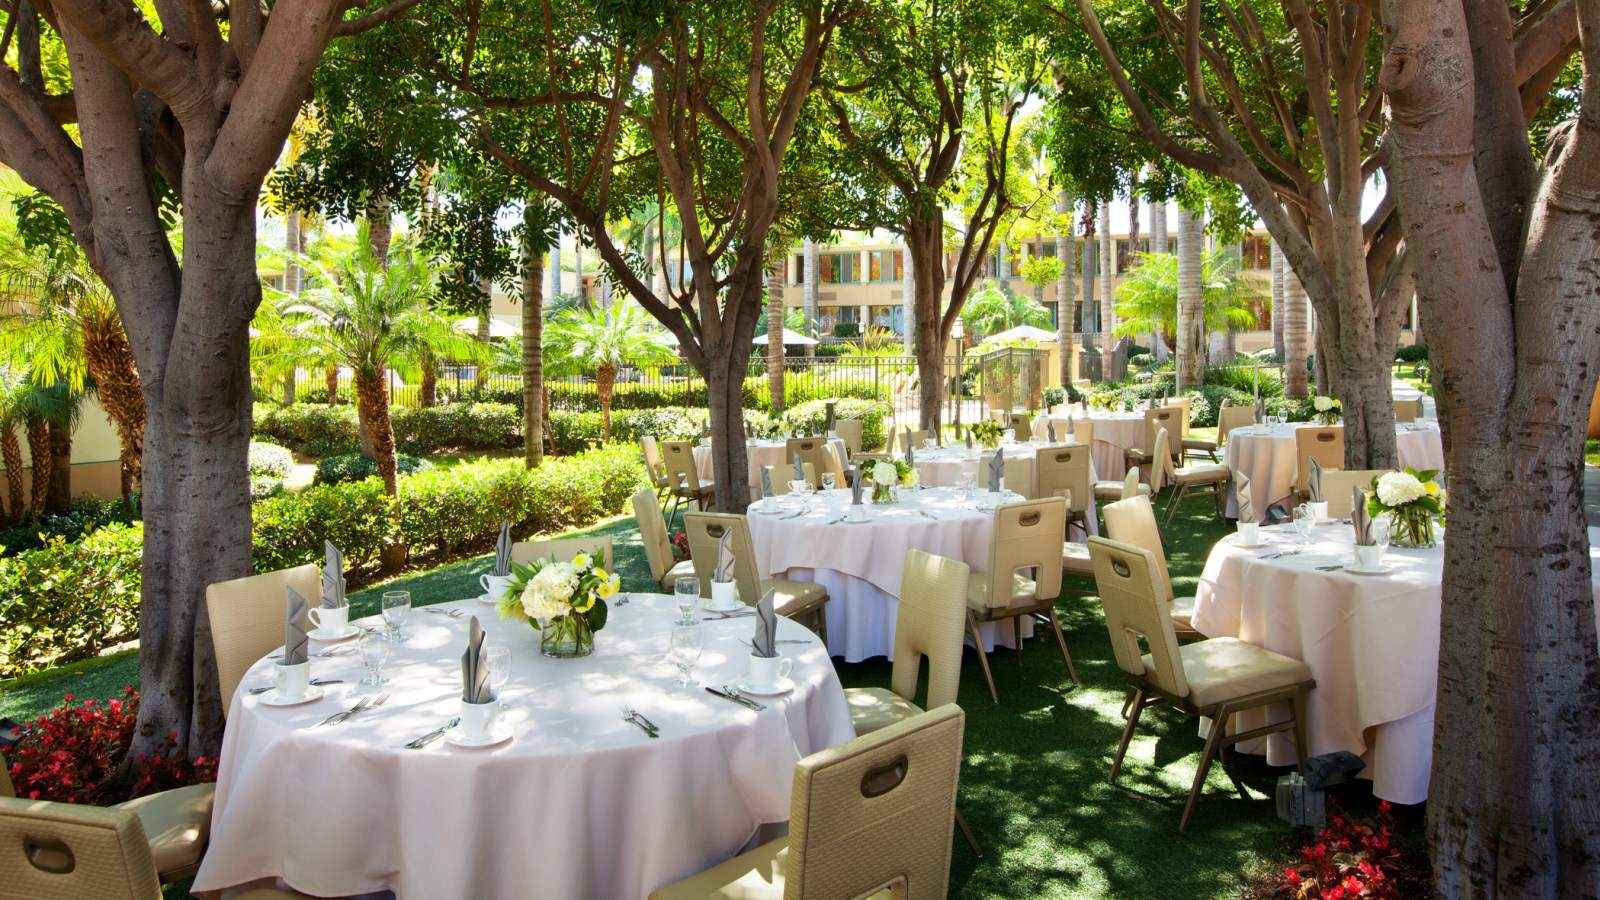 Sheraton La Jolla Hotel - The Grove